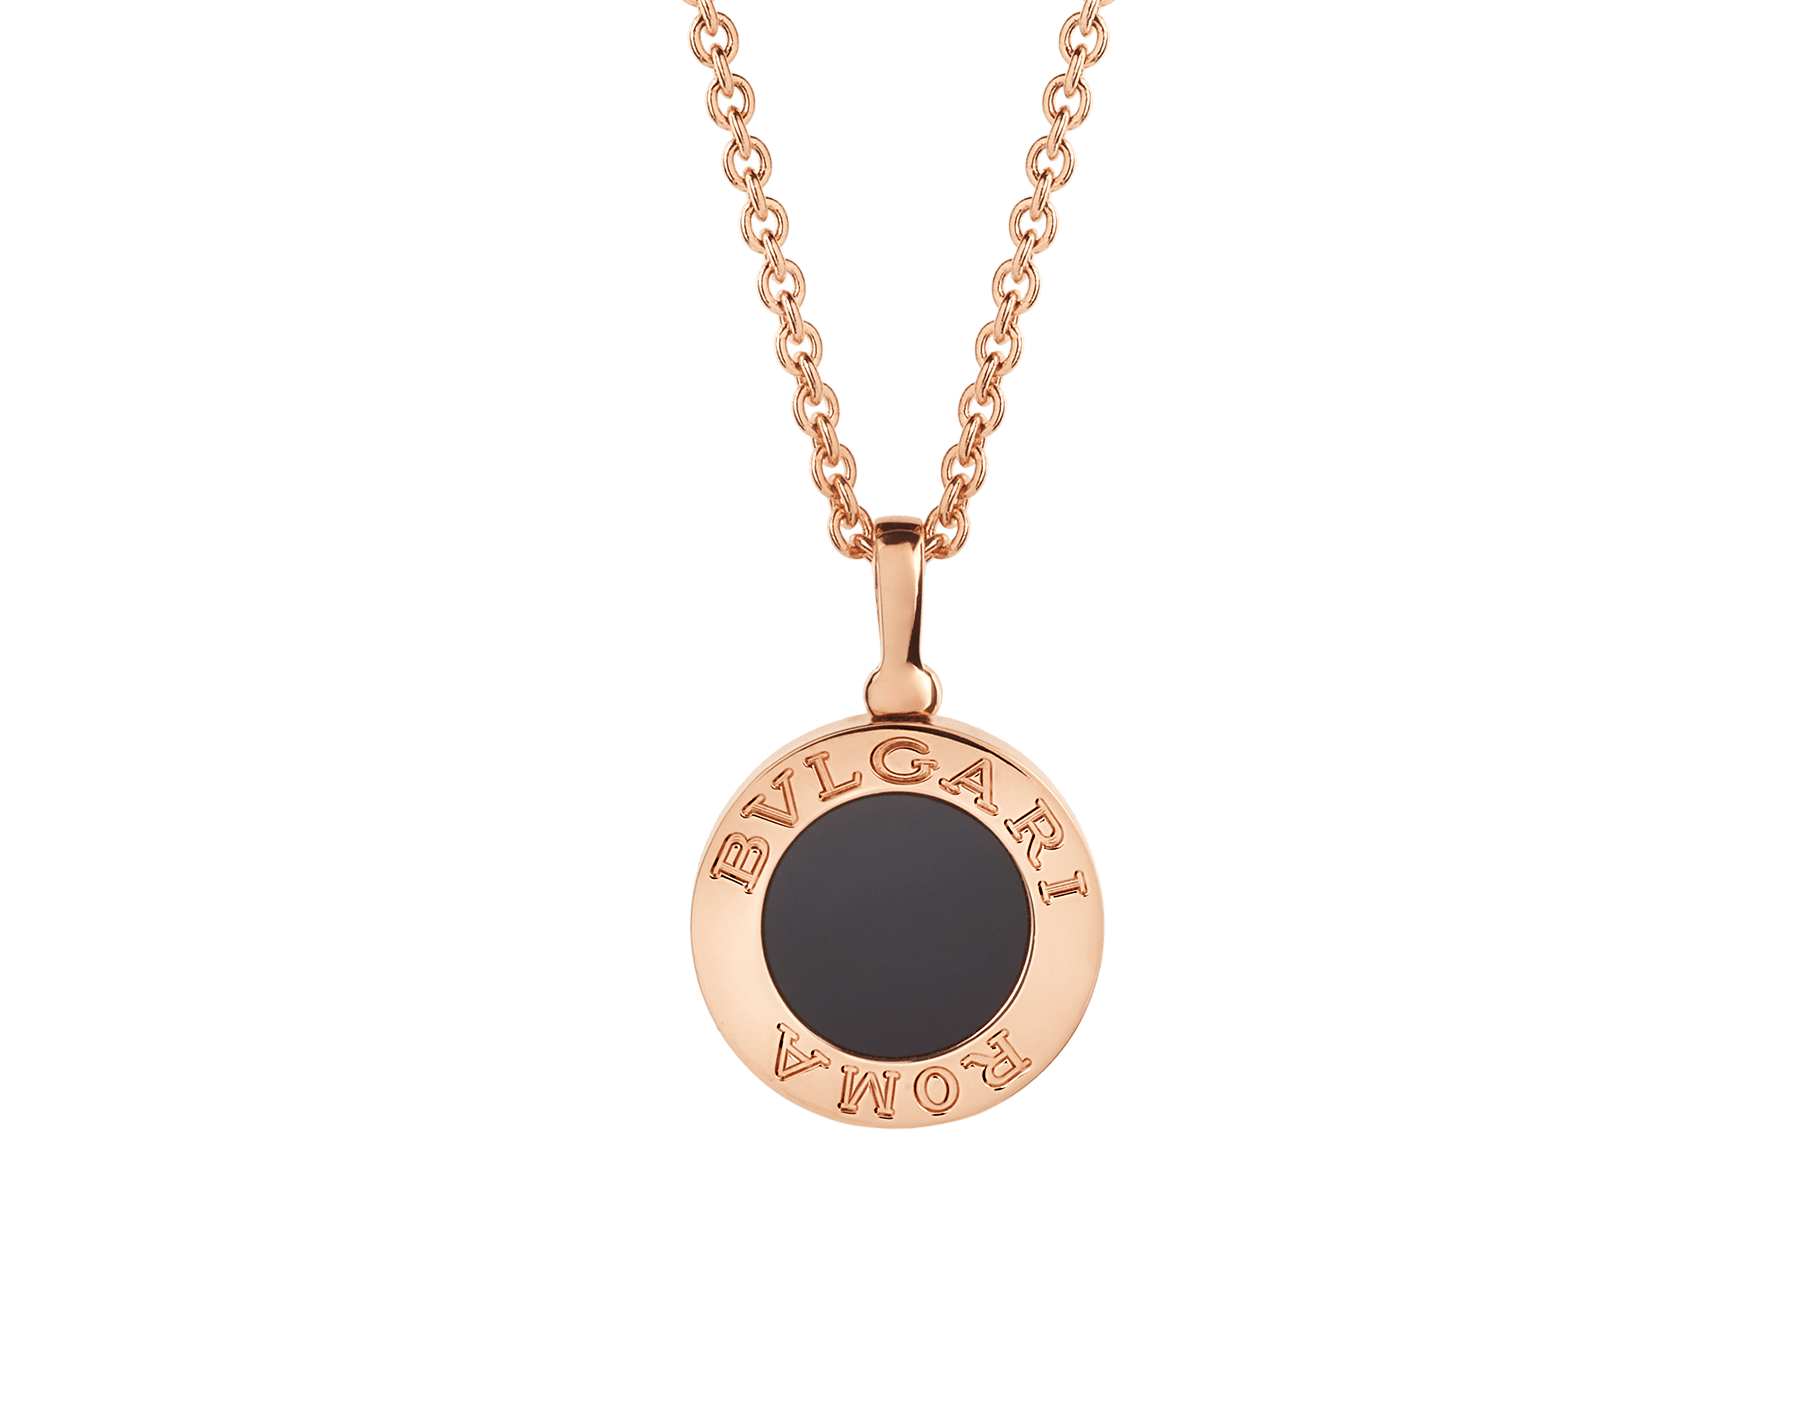 BVLGARI BVLGARI necklace with 18 kt rose gold chain and 18 kt rose gold pendant set with onyx and pavé diamonds 350815 image 3